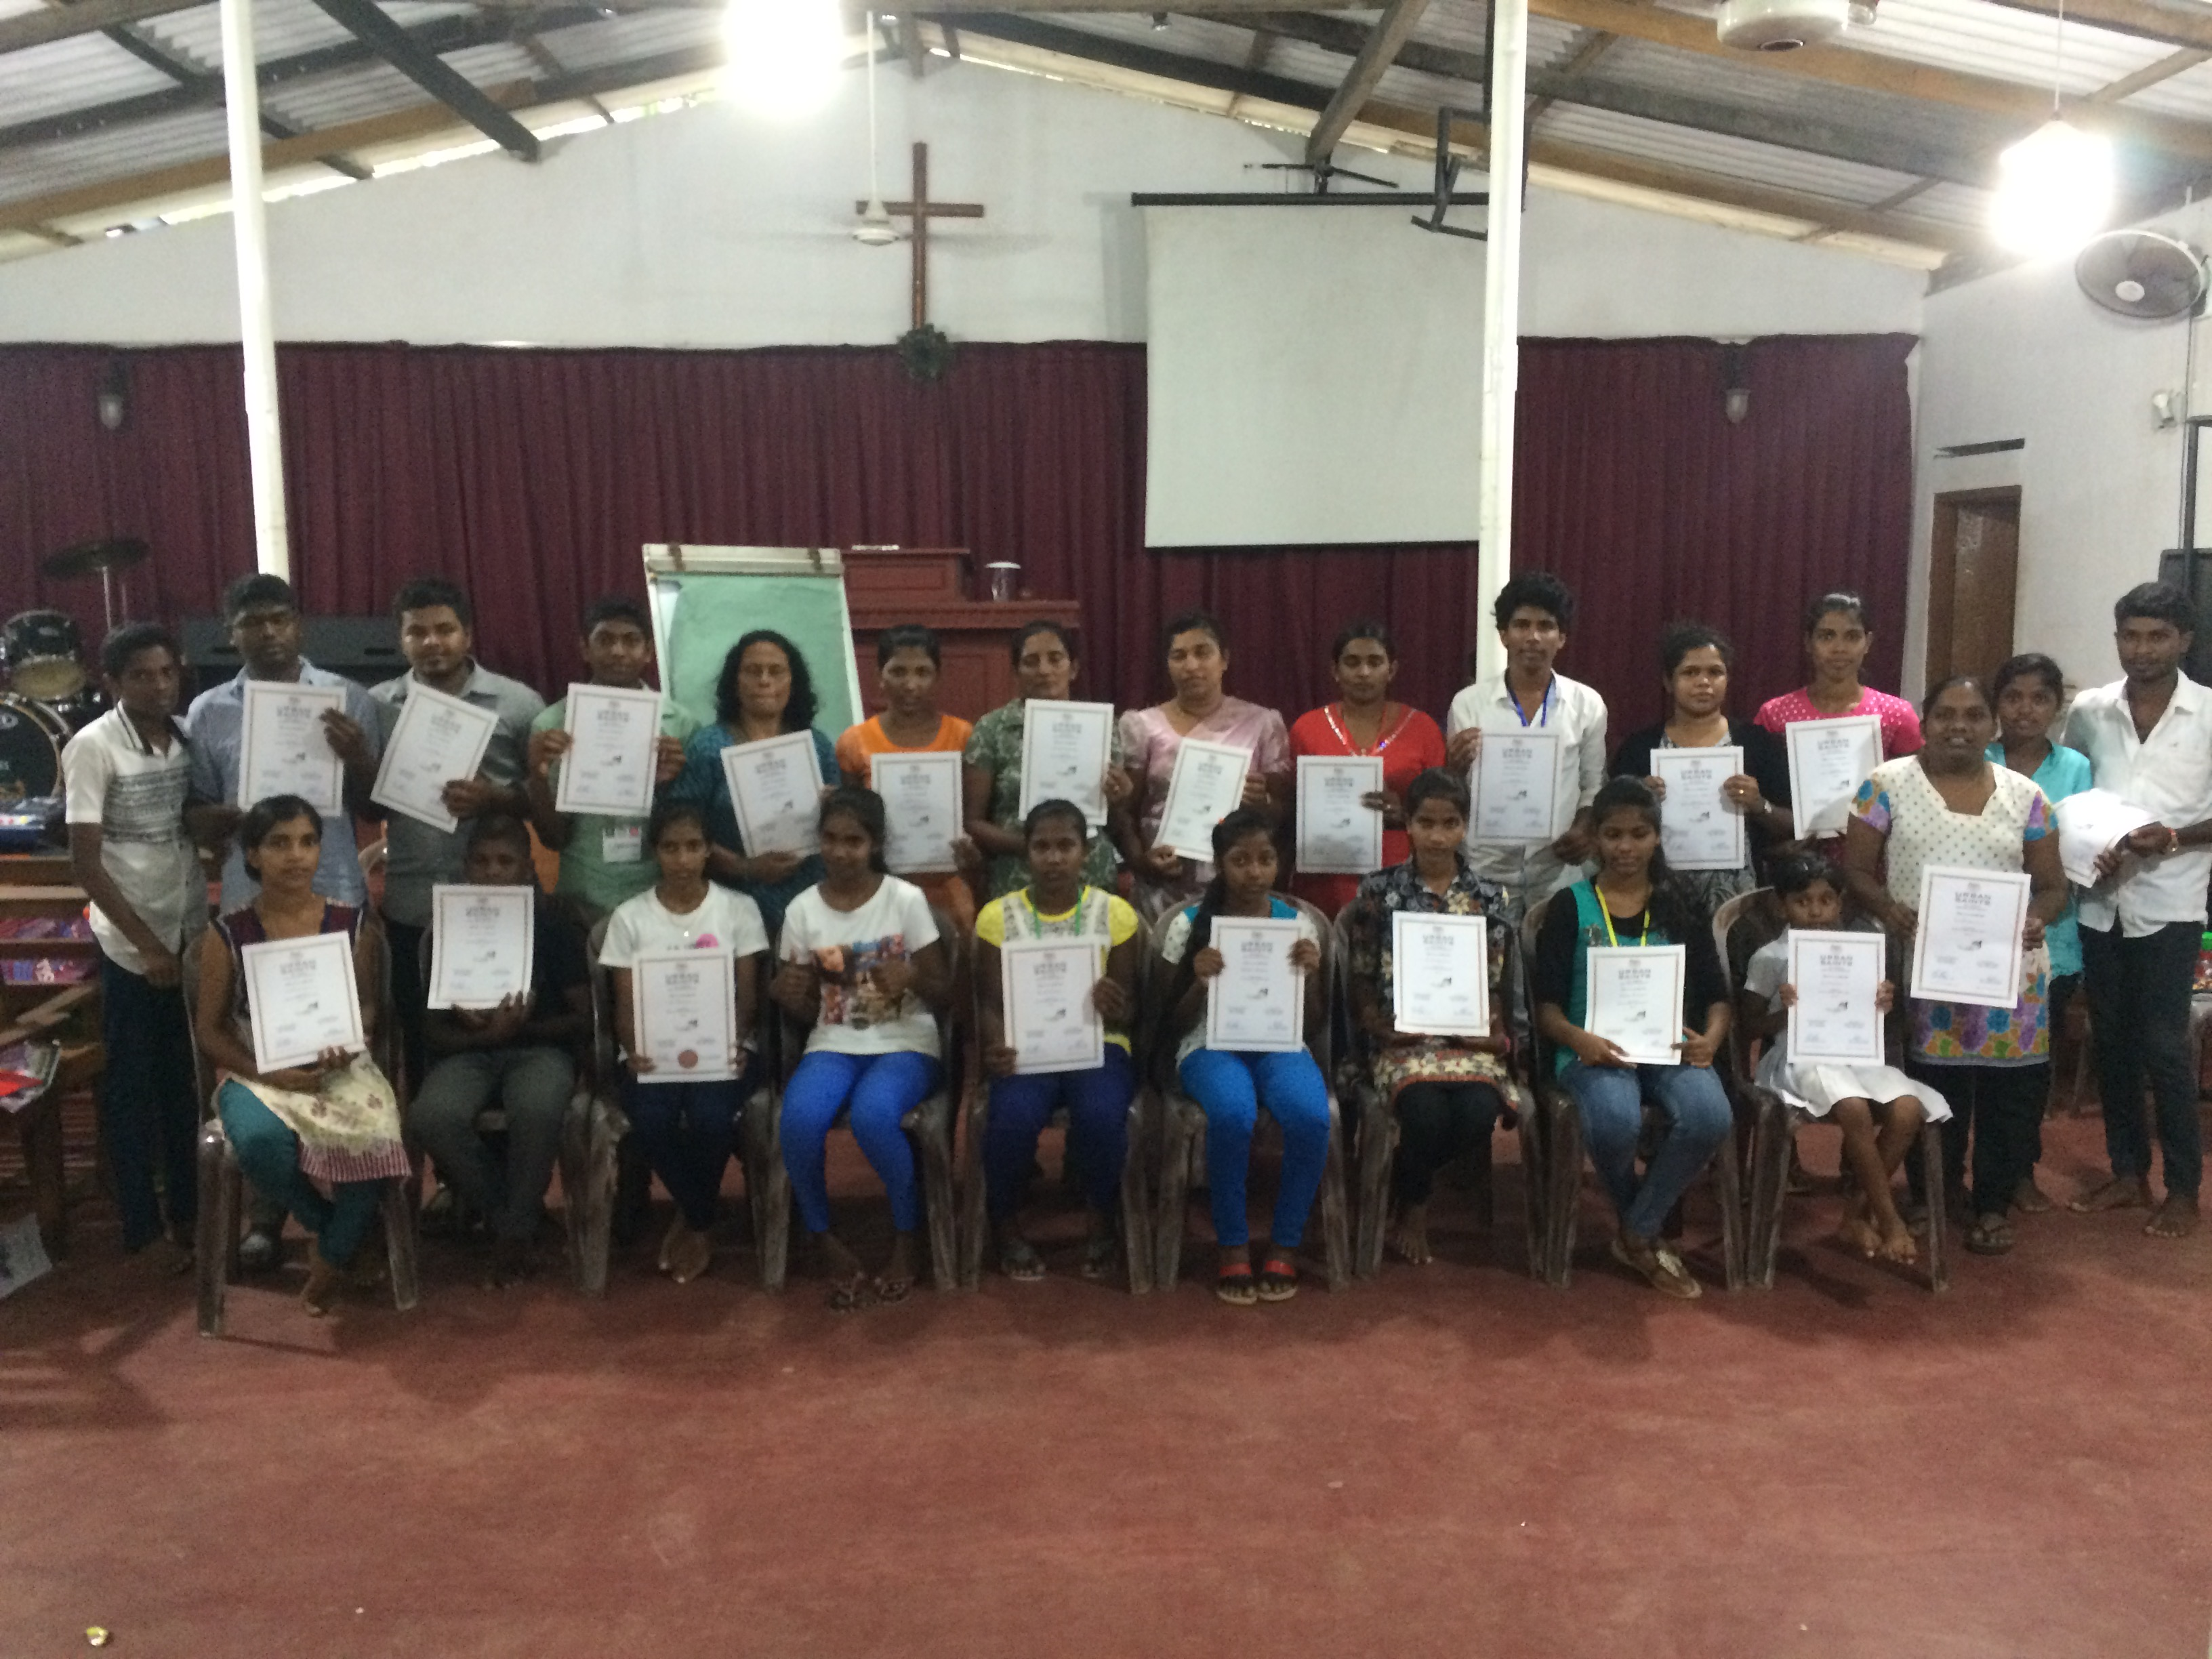 Youth and children's worker training